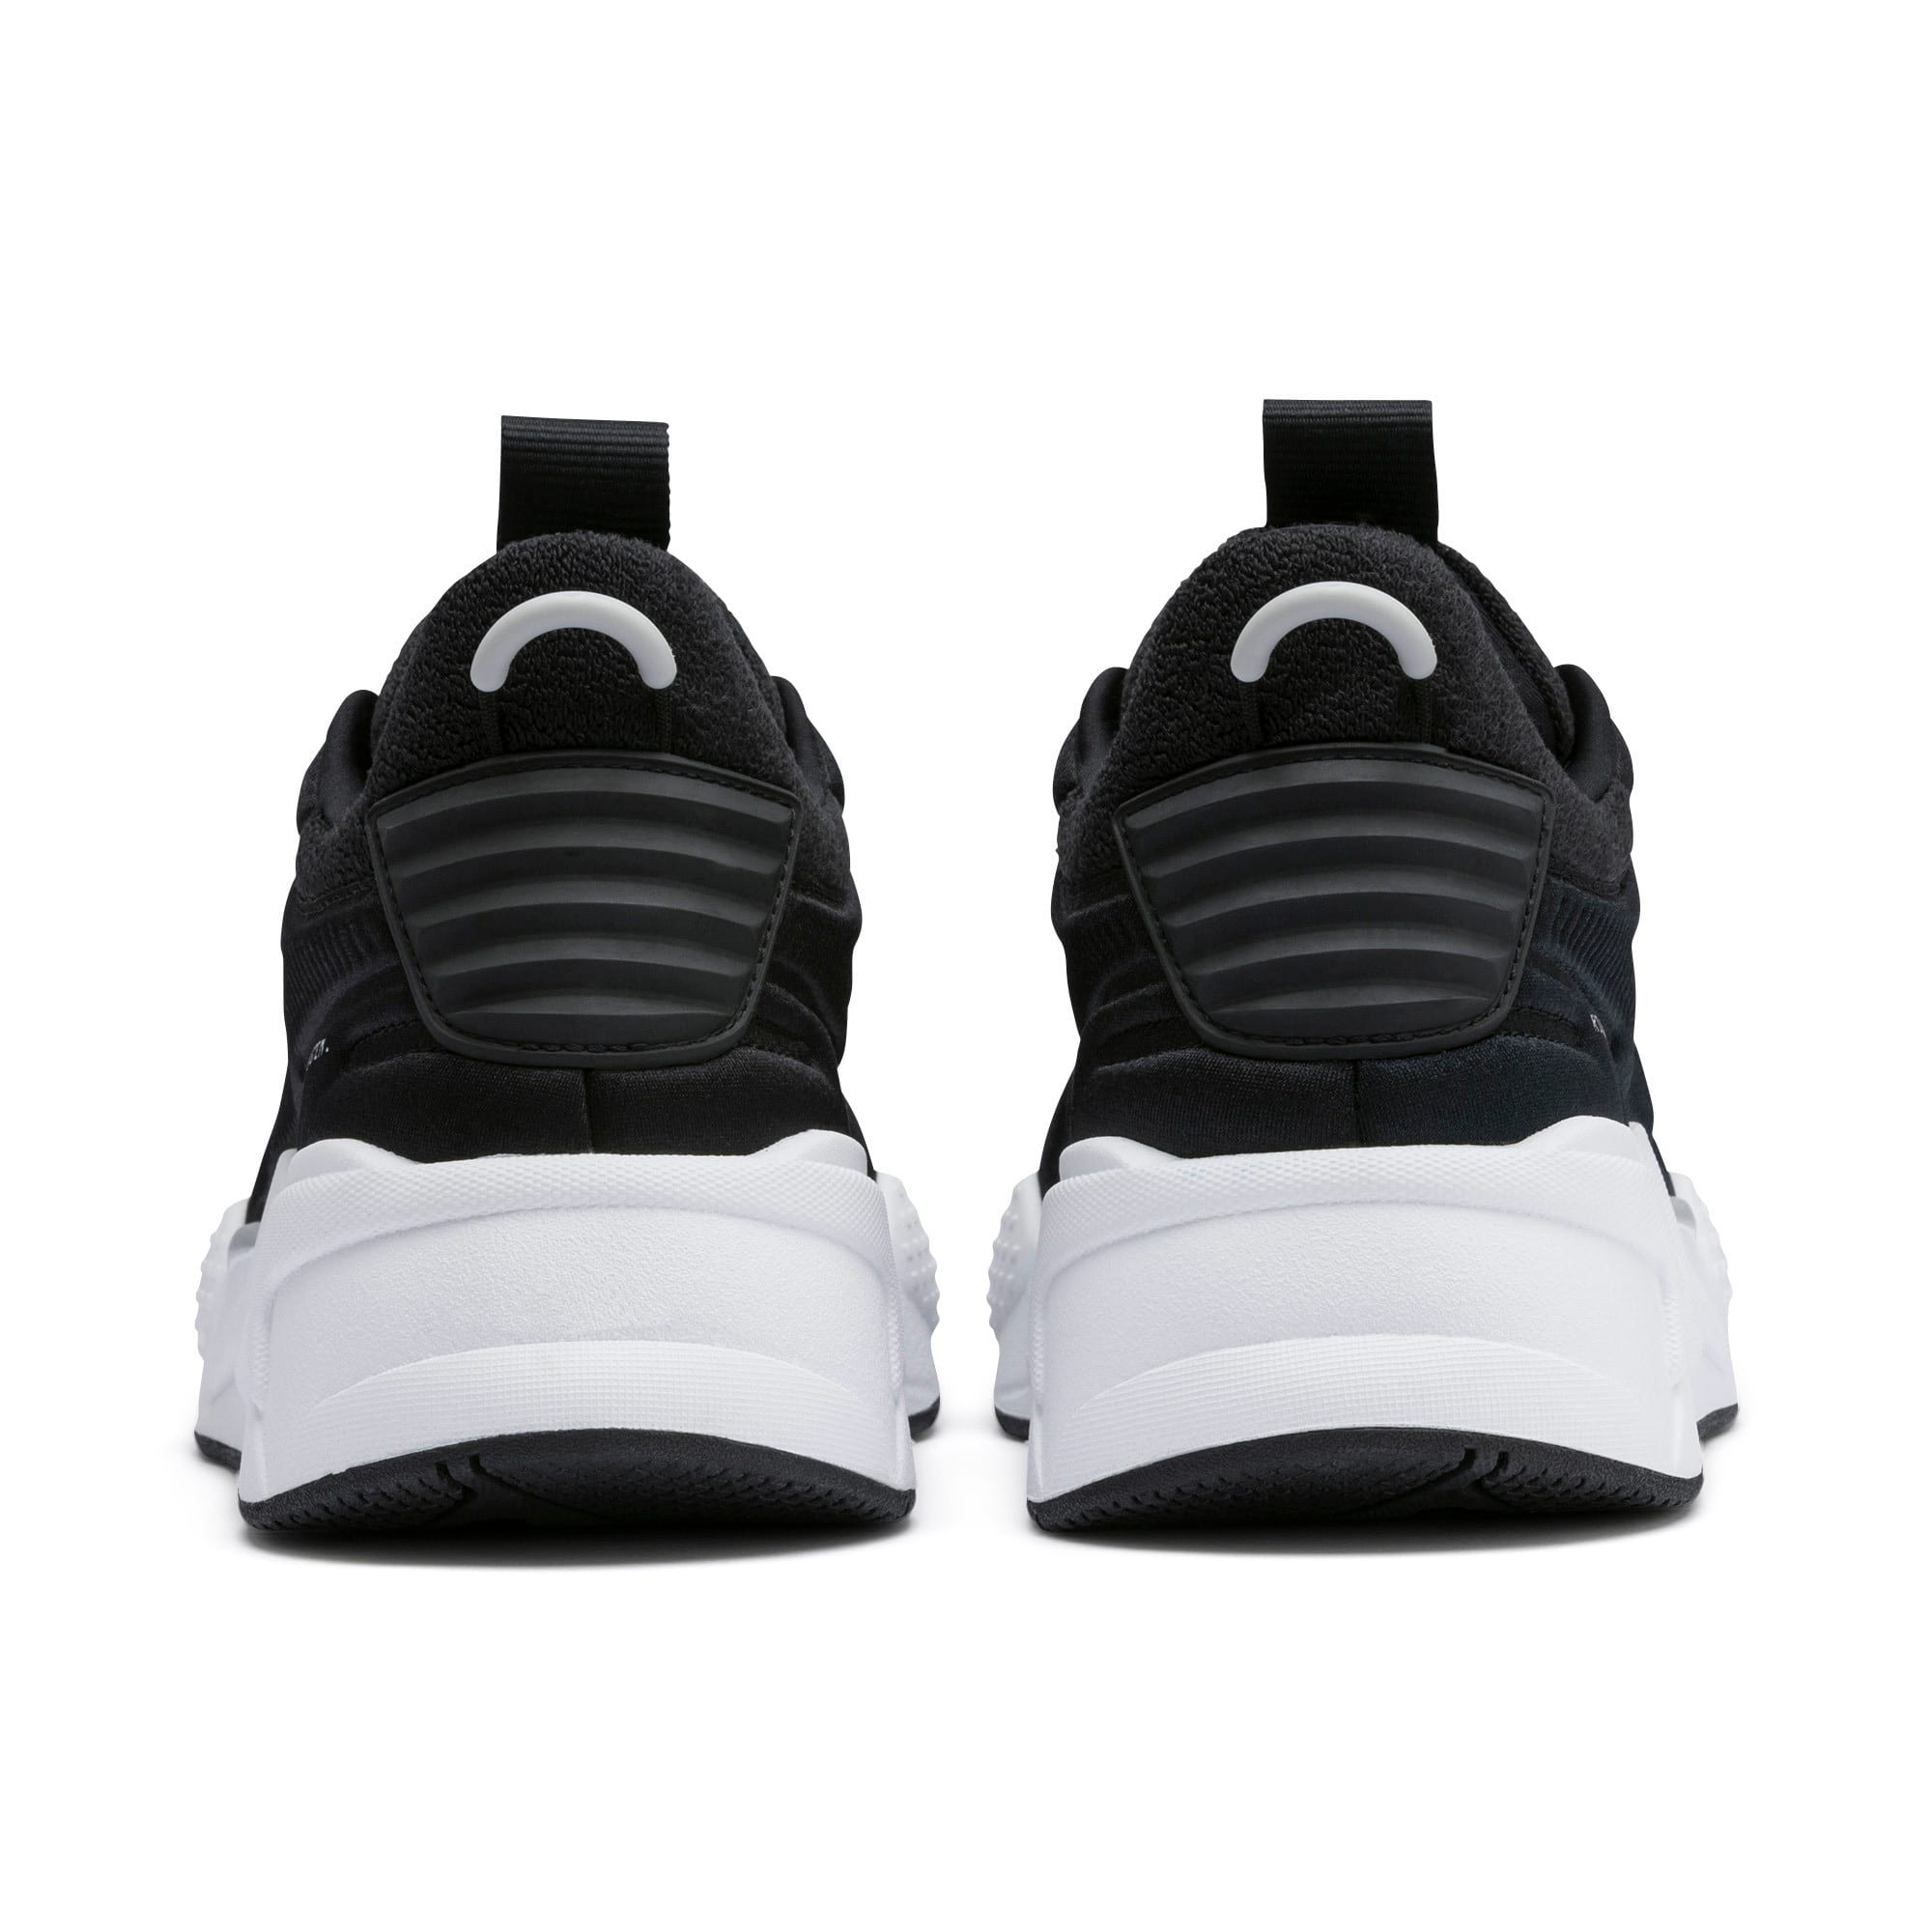 Thumbnail 4 of RS-X Softcase Trainers, Puma Black-Puma White, medium